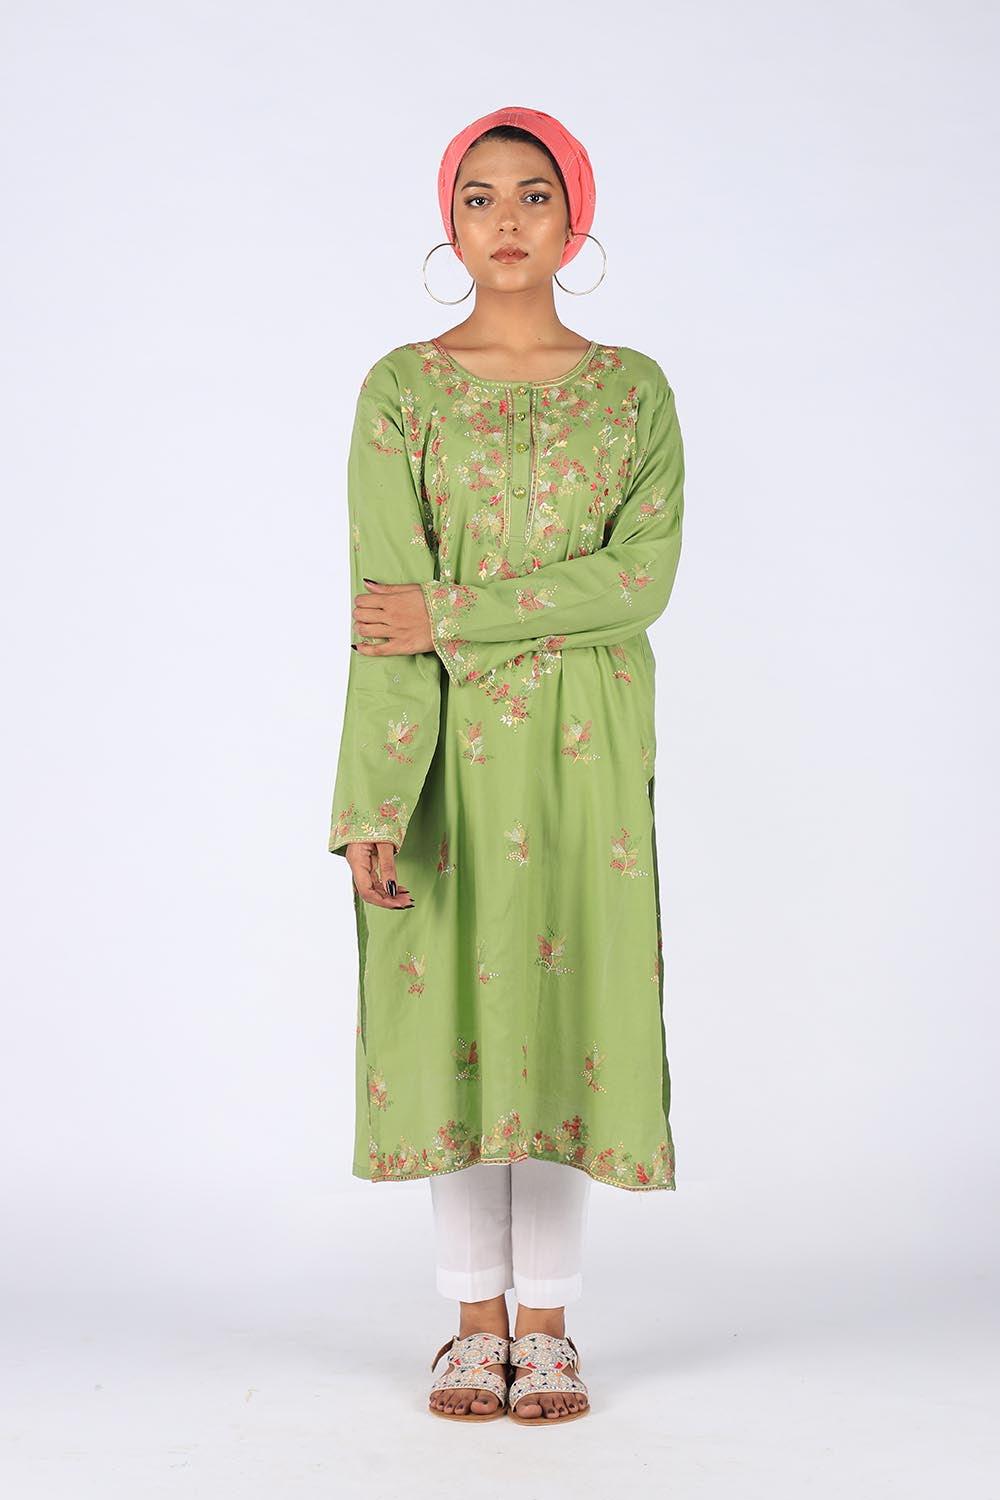 f6128bf9109 Green Hand Embroidered Kurta With Threadwork Embroidery - Zari Faisal